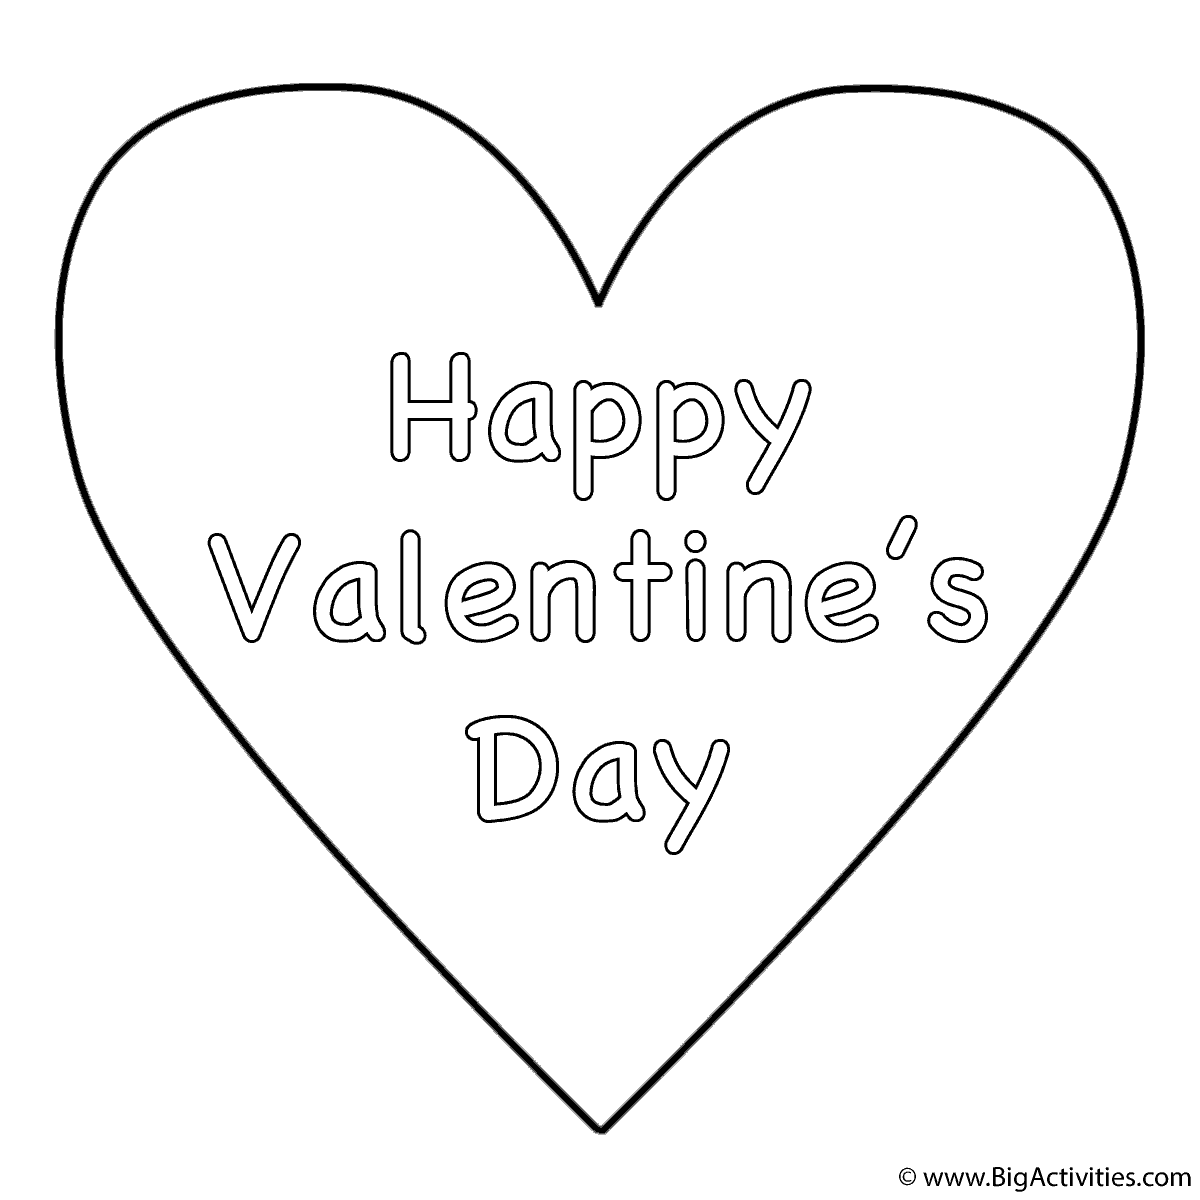 Happy Valentines Day Drawing at GetDrawings.com | Free for personal ...